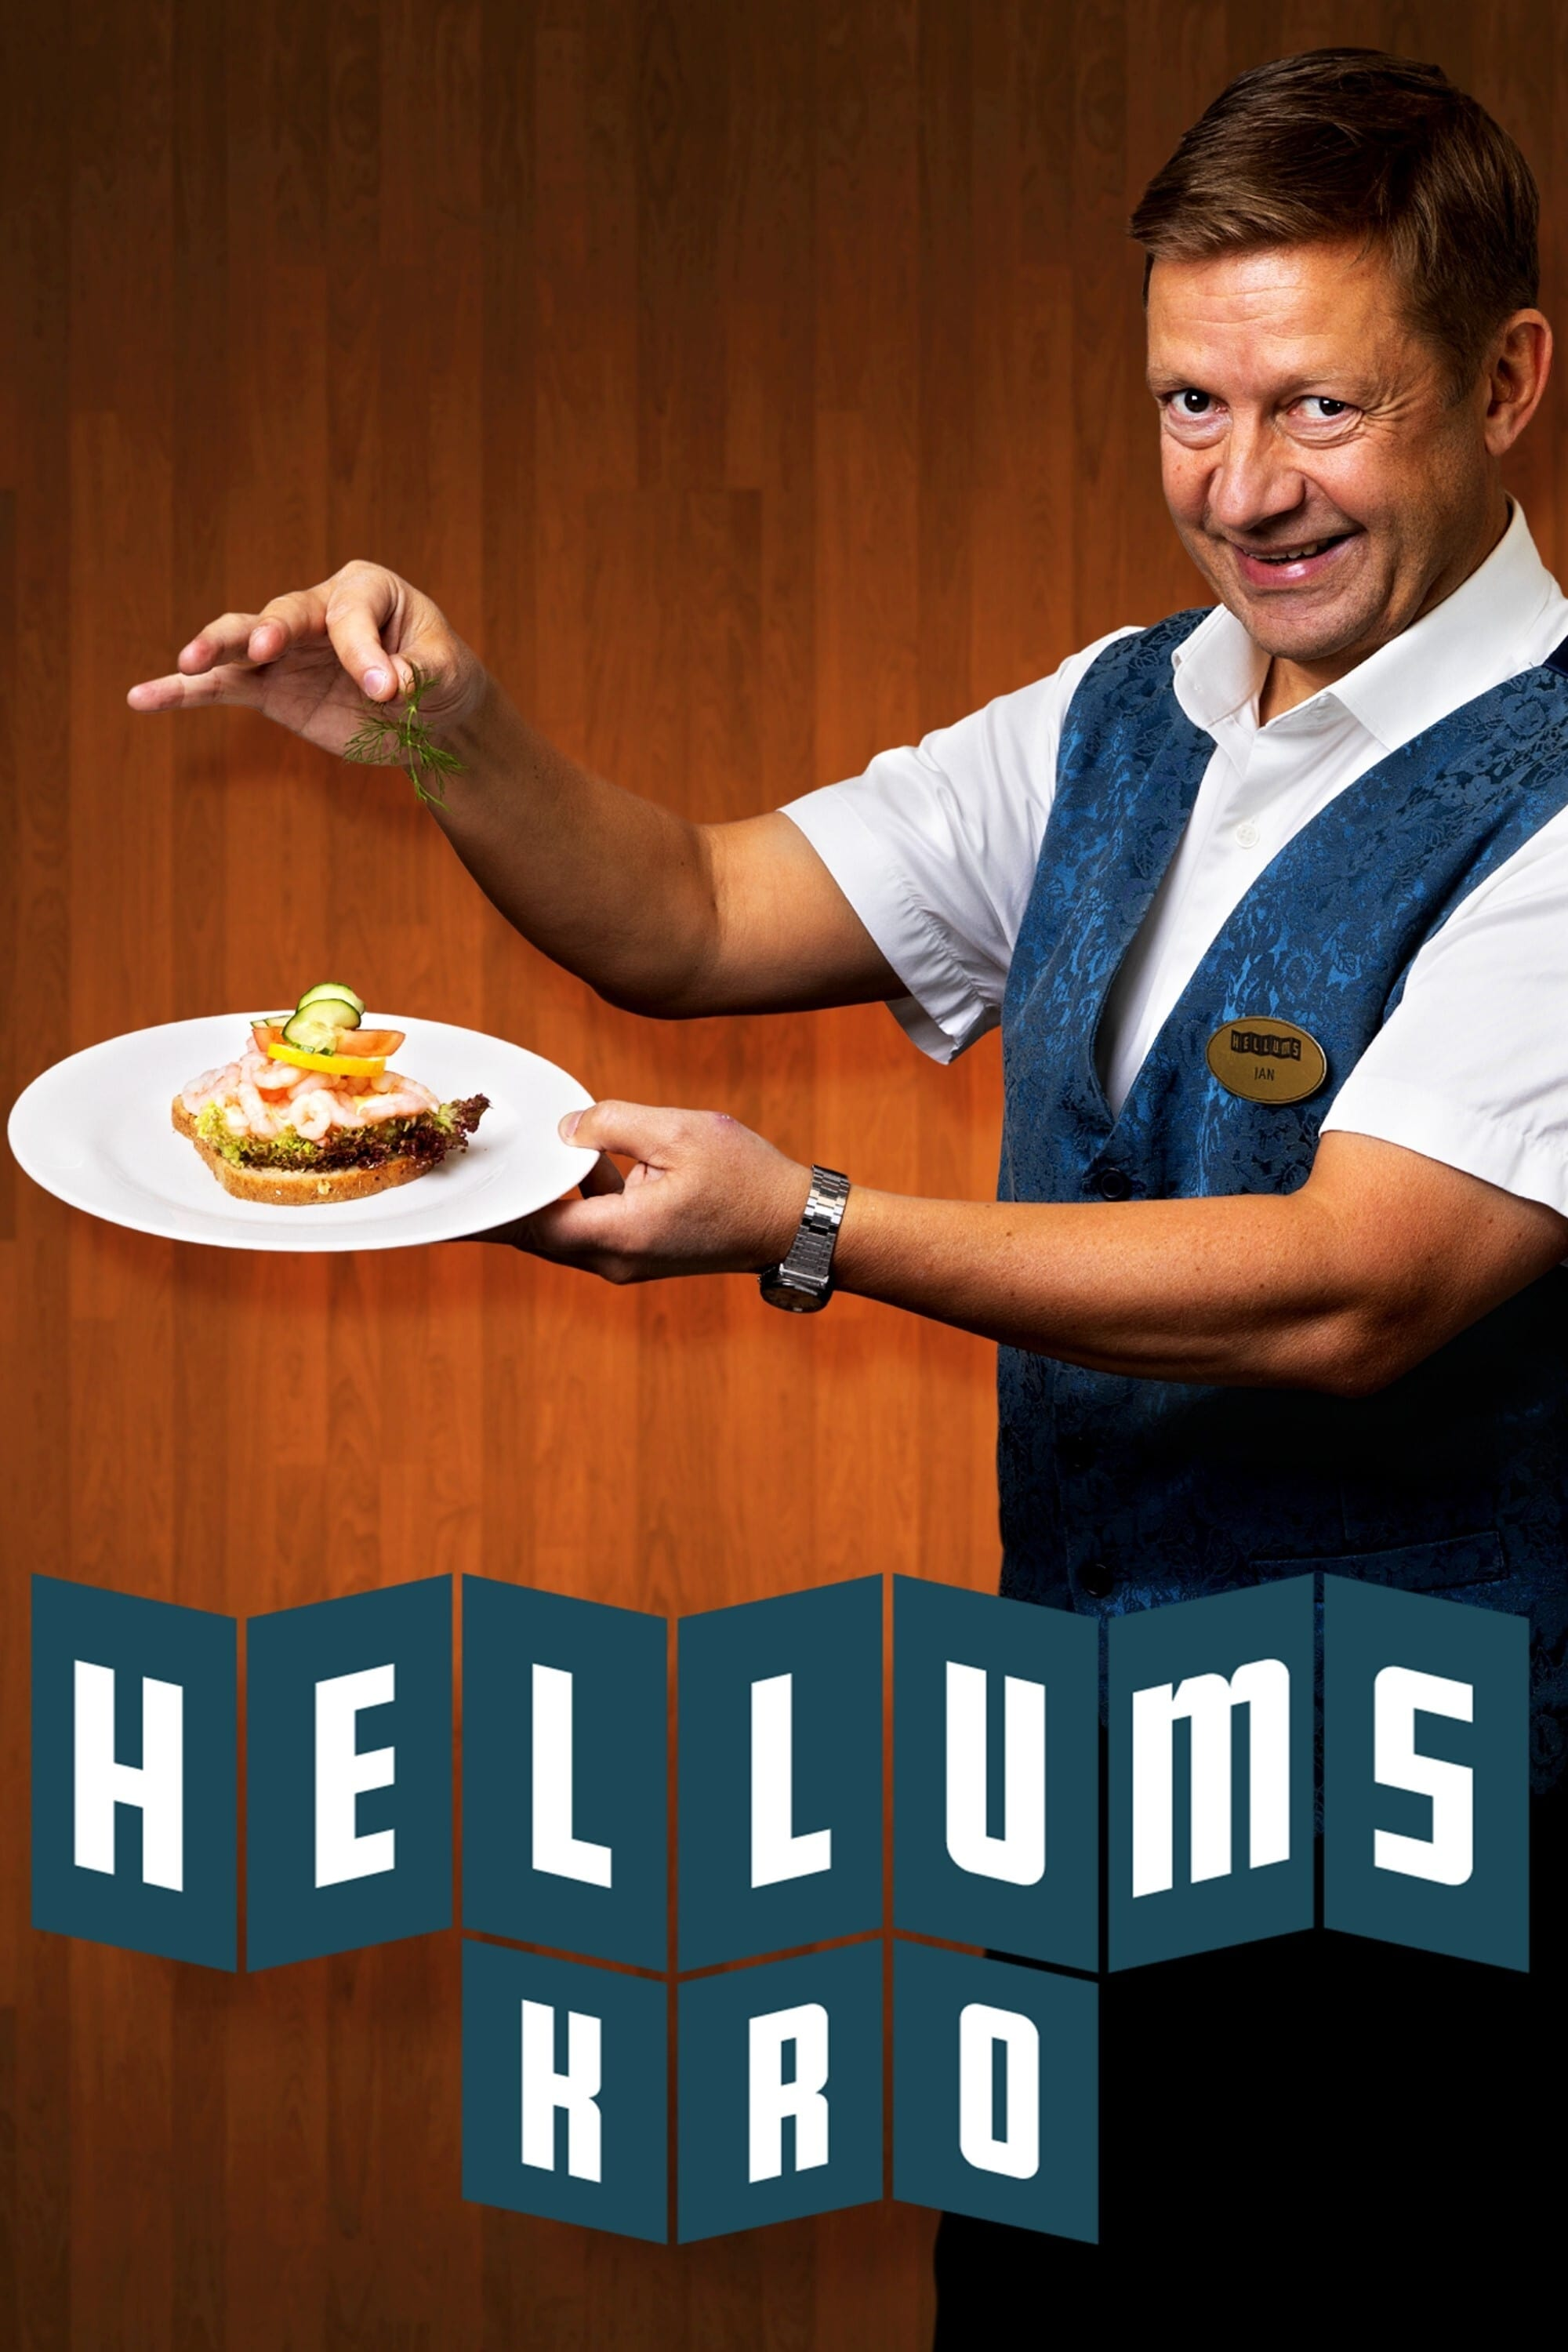 Hellums kro TV Shows About Miniseries